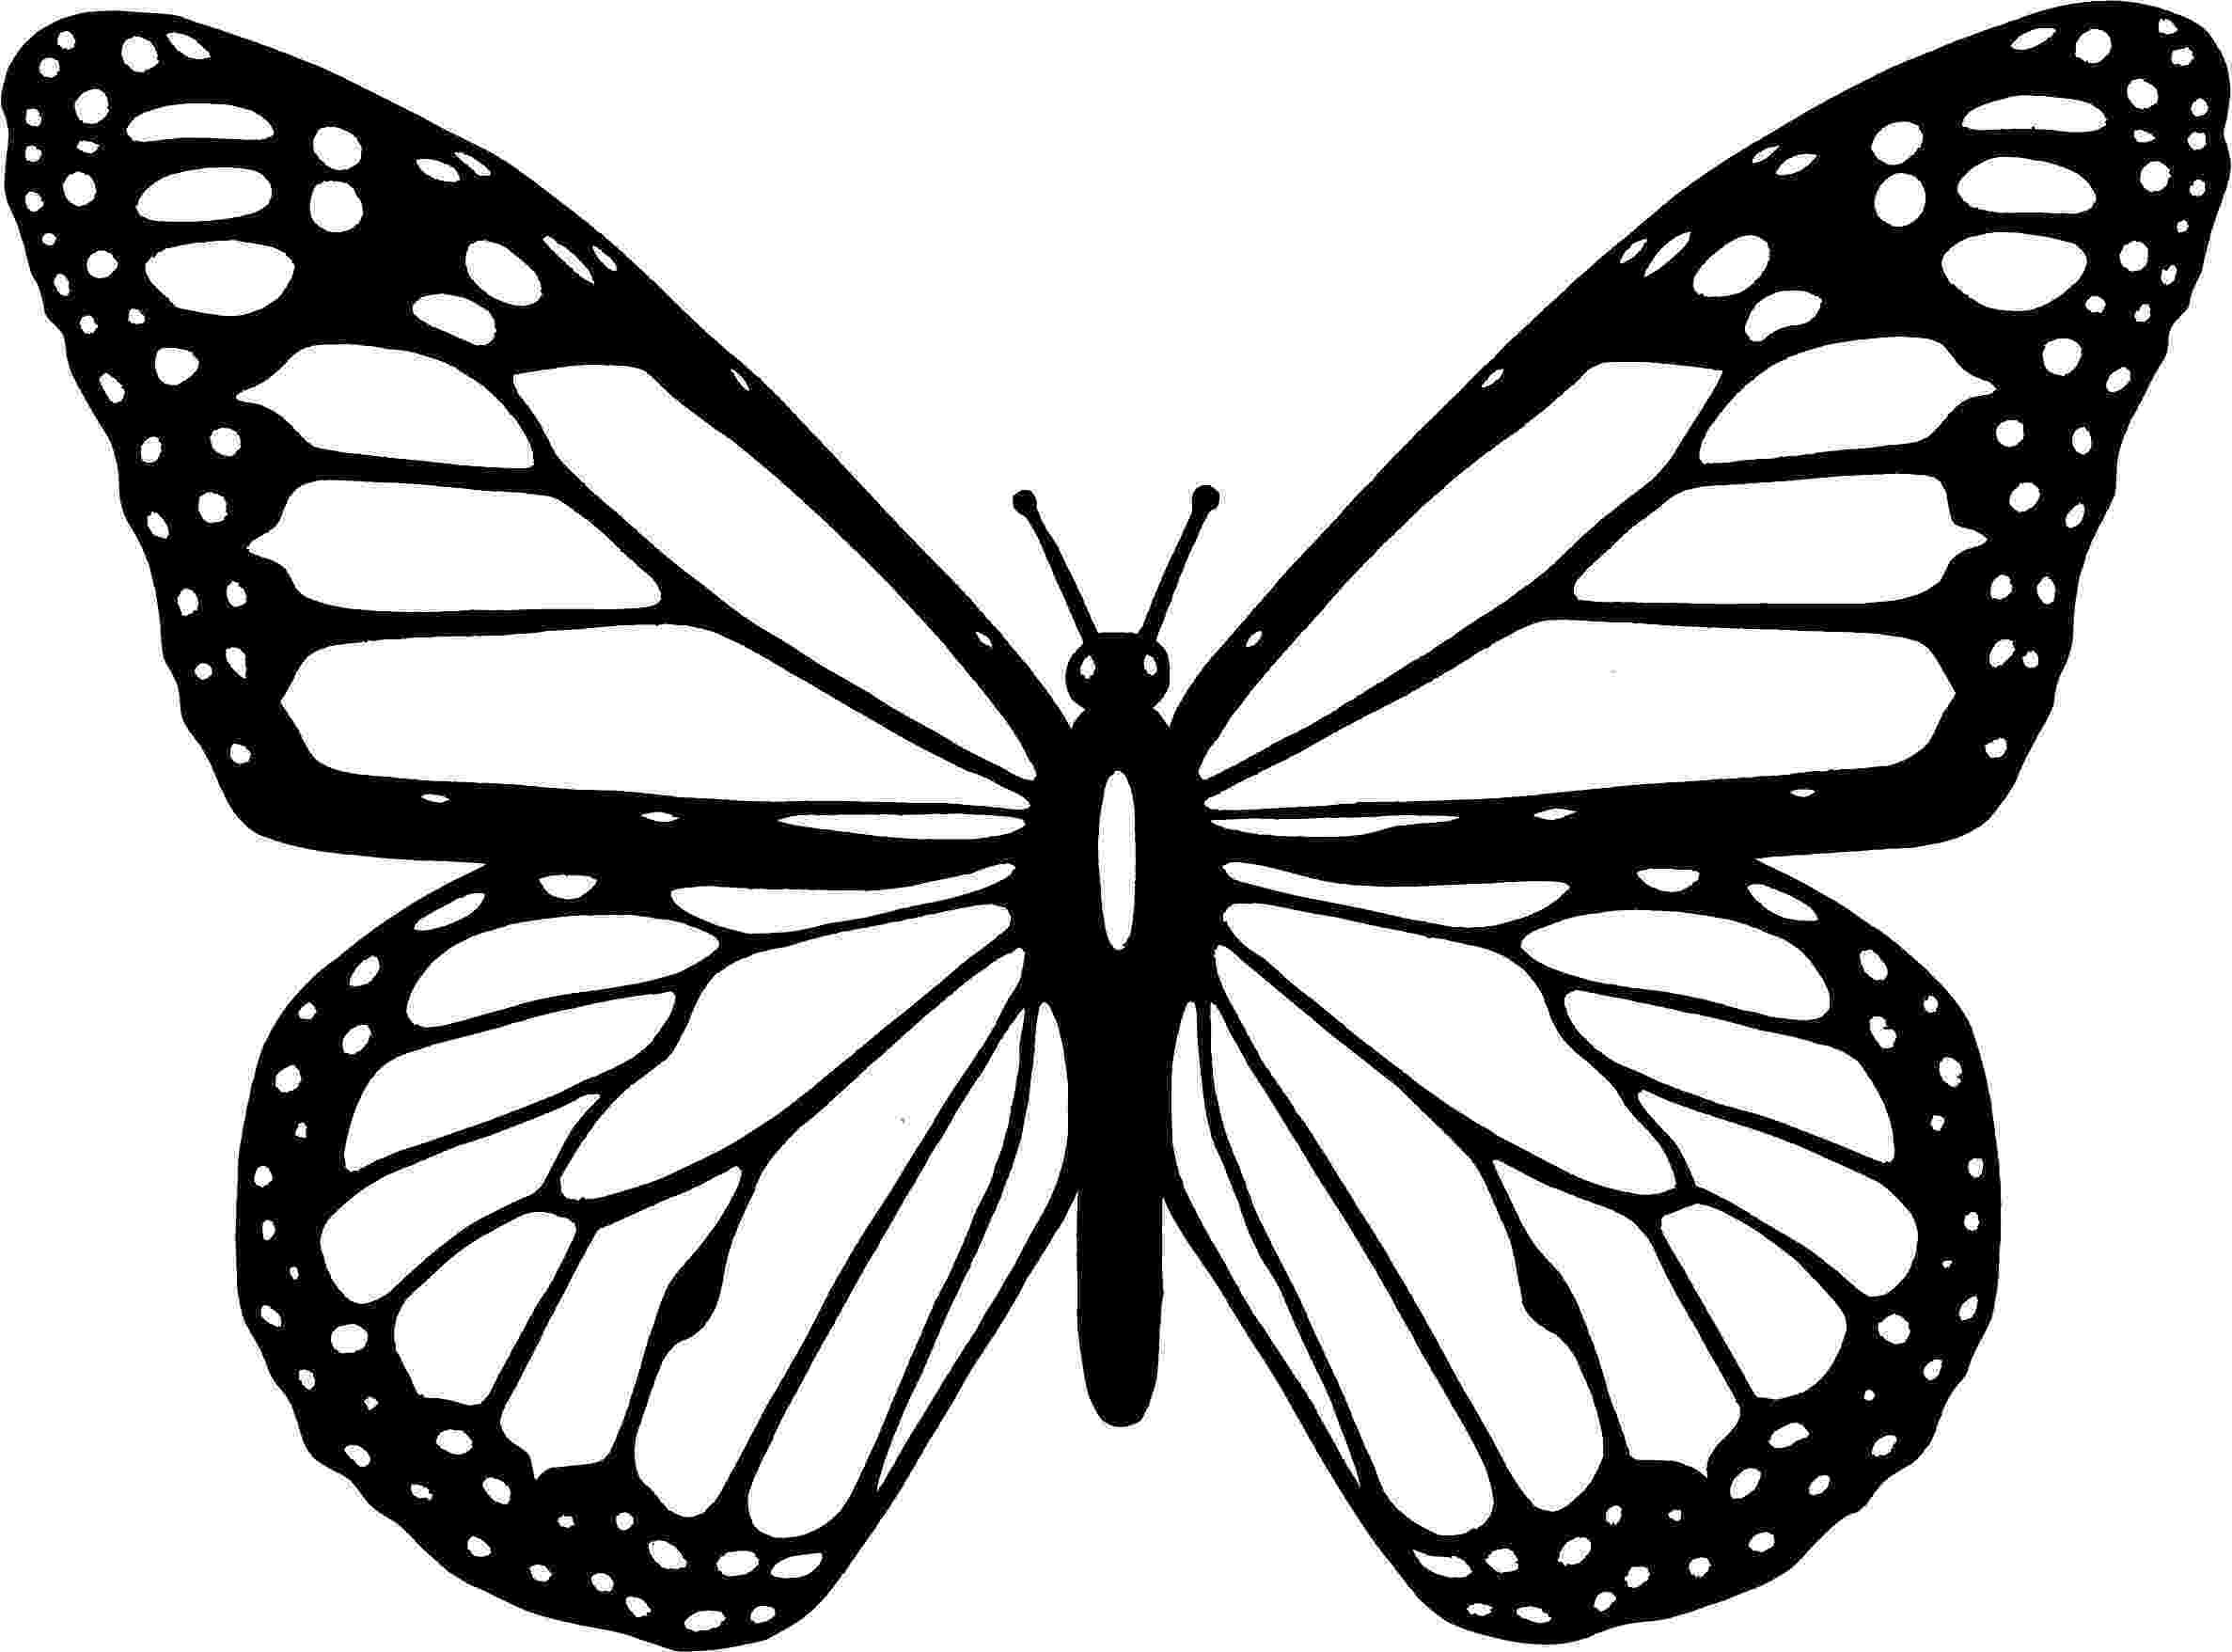 monarch butterfly coloring pages monarch butterfly coloring pages to print free coloring pages monarch coloring butterfly